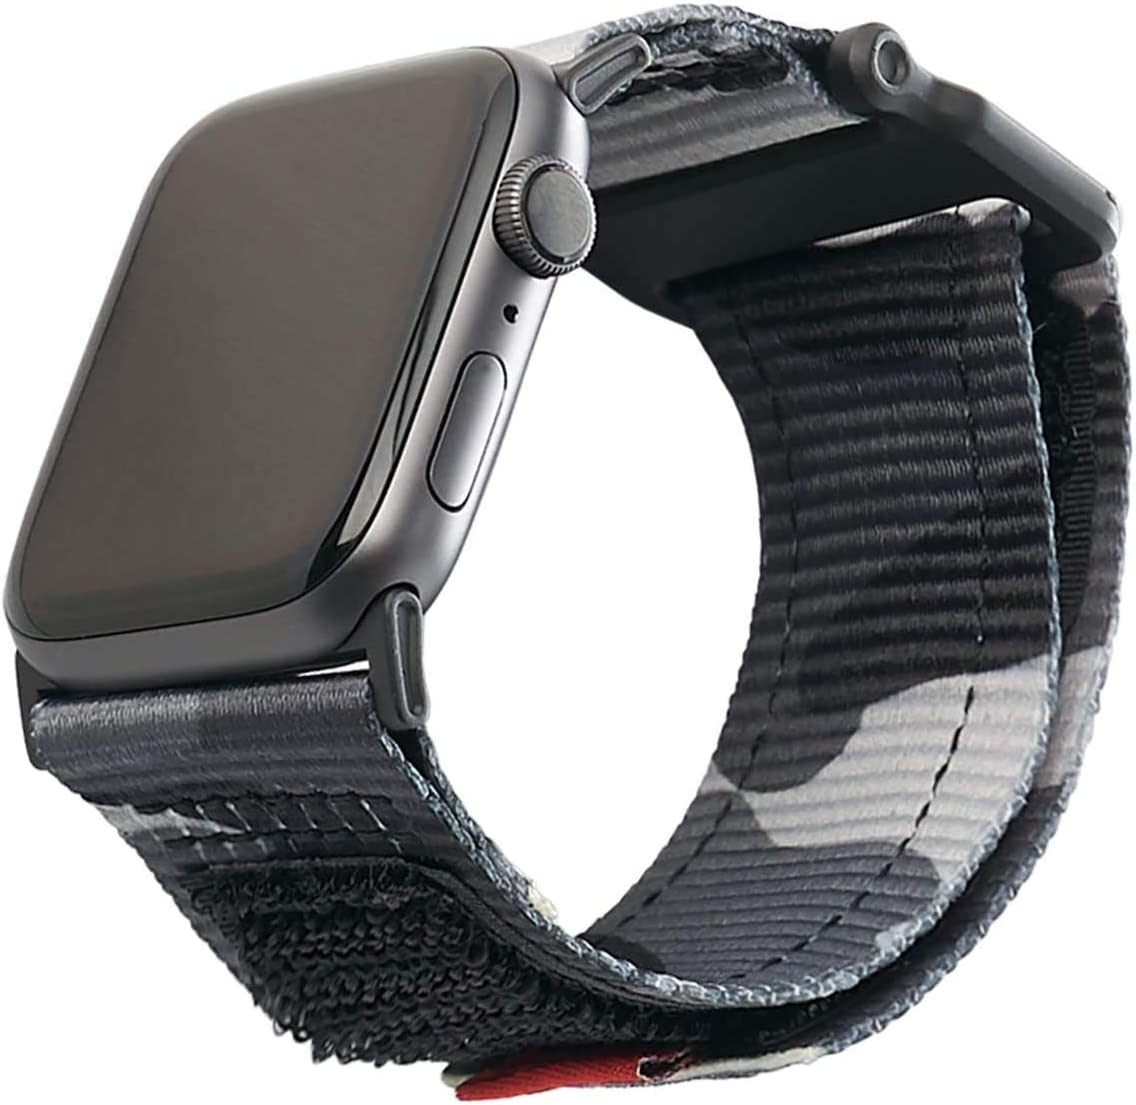 URBAN ARMOR GEAR UAG Compatible Apple Watch Band 44mm 42mm, iWatch Series 6/5/4/3/2/1 & Watch SE, High Strength Nylon Weave Replacement Strap, Active Midnight Camo